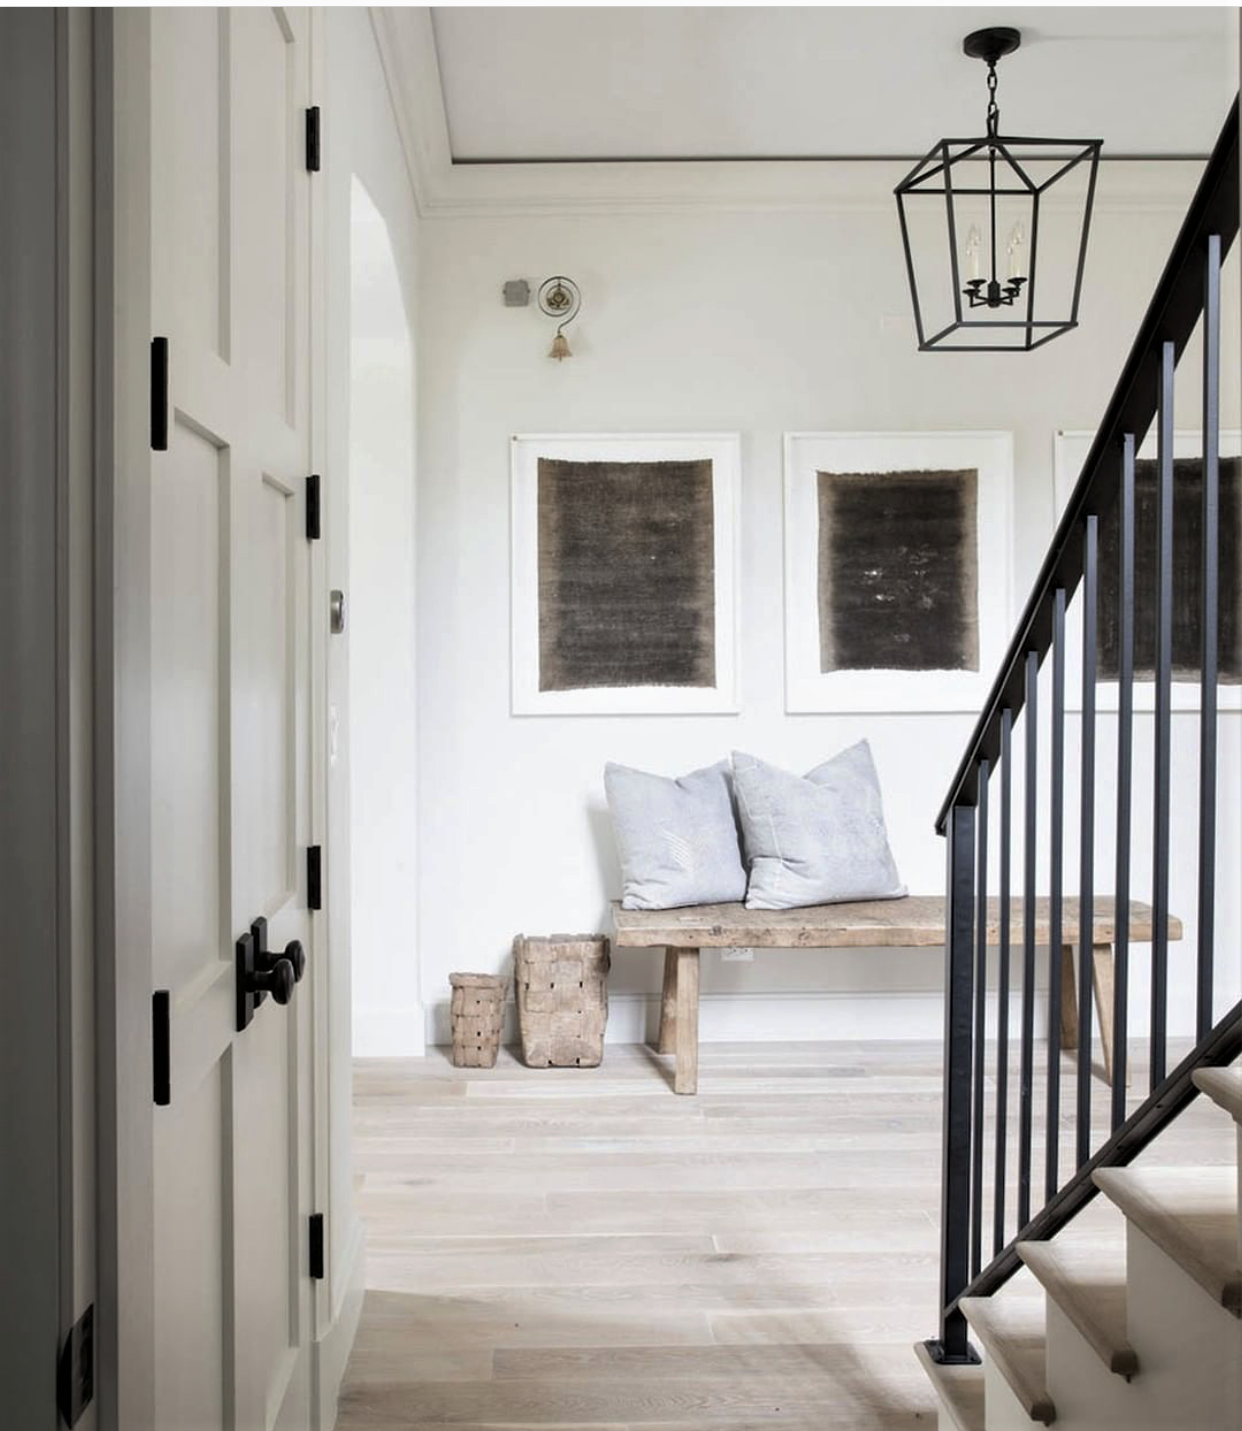 Staircase Ideas For Your Hallway That Will Really Make An: Warm And Inviting Hall Decor By Kate Marker Interiors. The